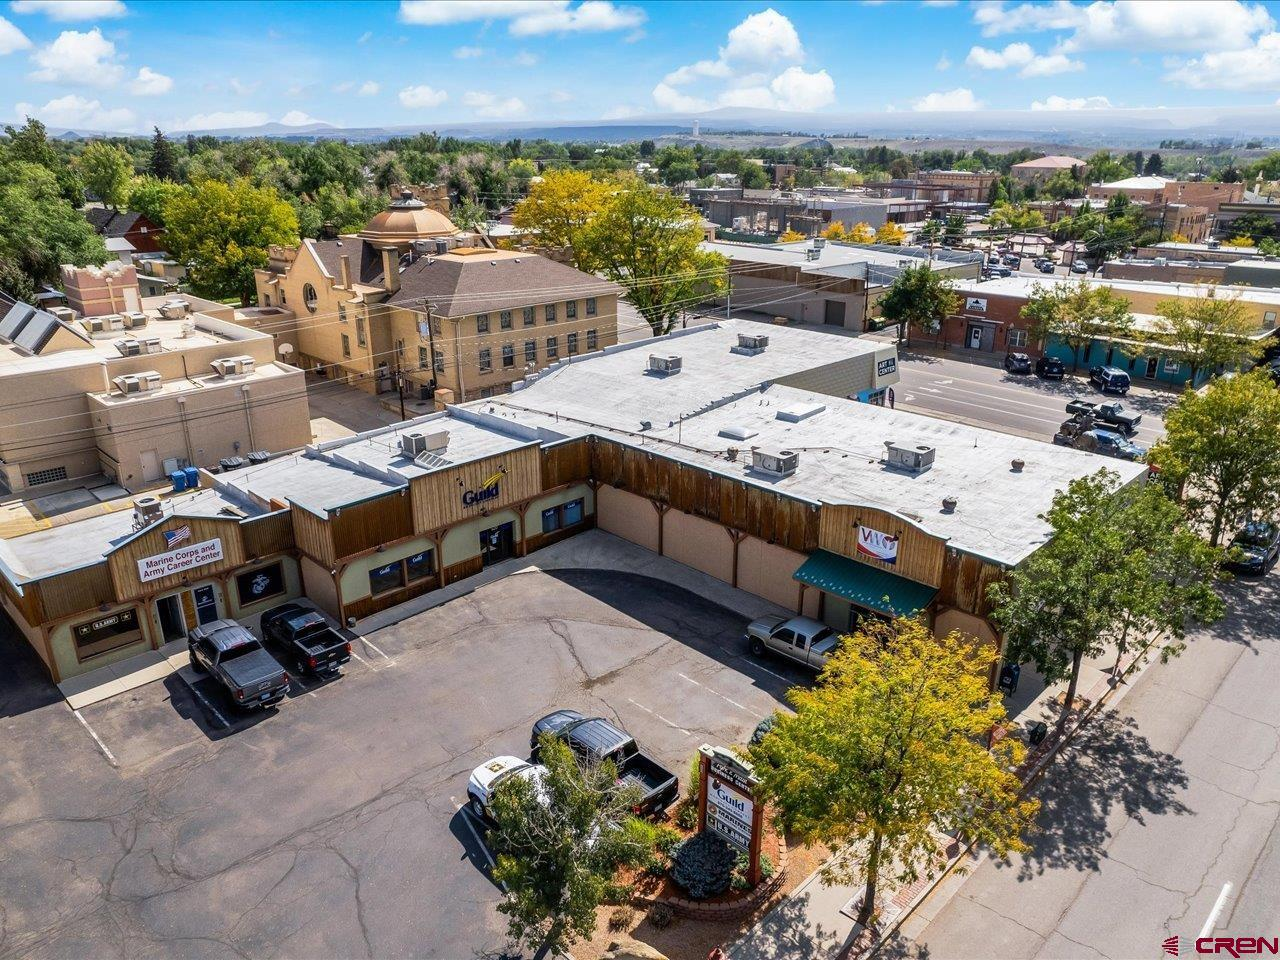 Investment opportunity in downtown Montrose, CO. The multi tenant retail complex has six tenants and some additional spaces that could be completed to add a few more. Building is in great shape and offers designated parking lots in a busy Main St retail area of a quickly growing community.